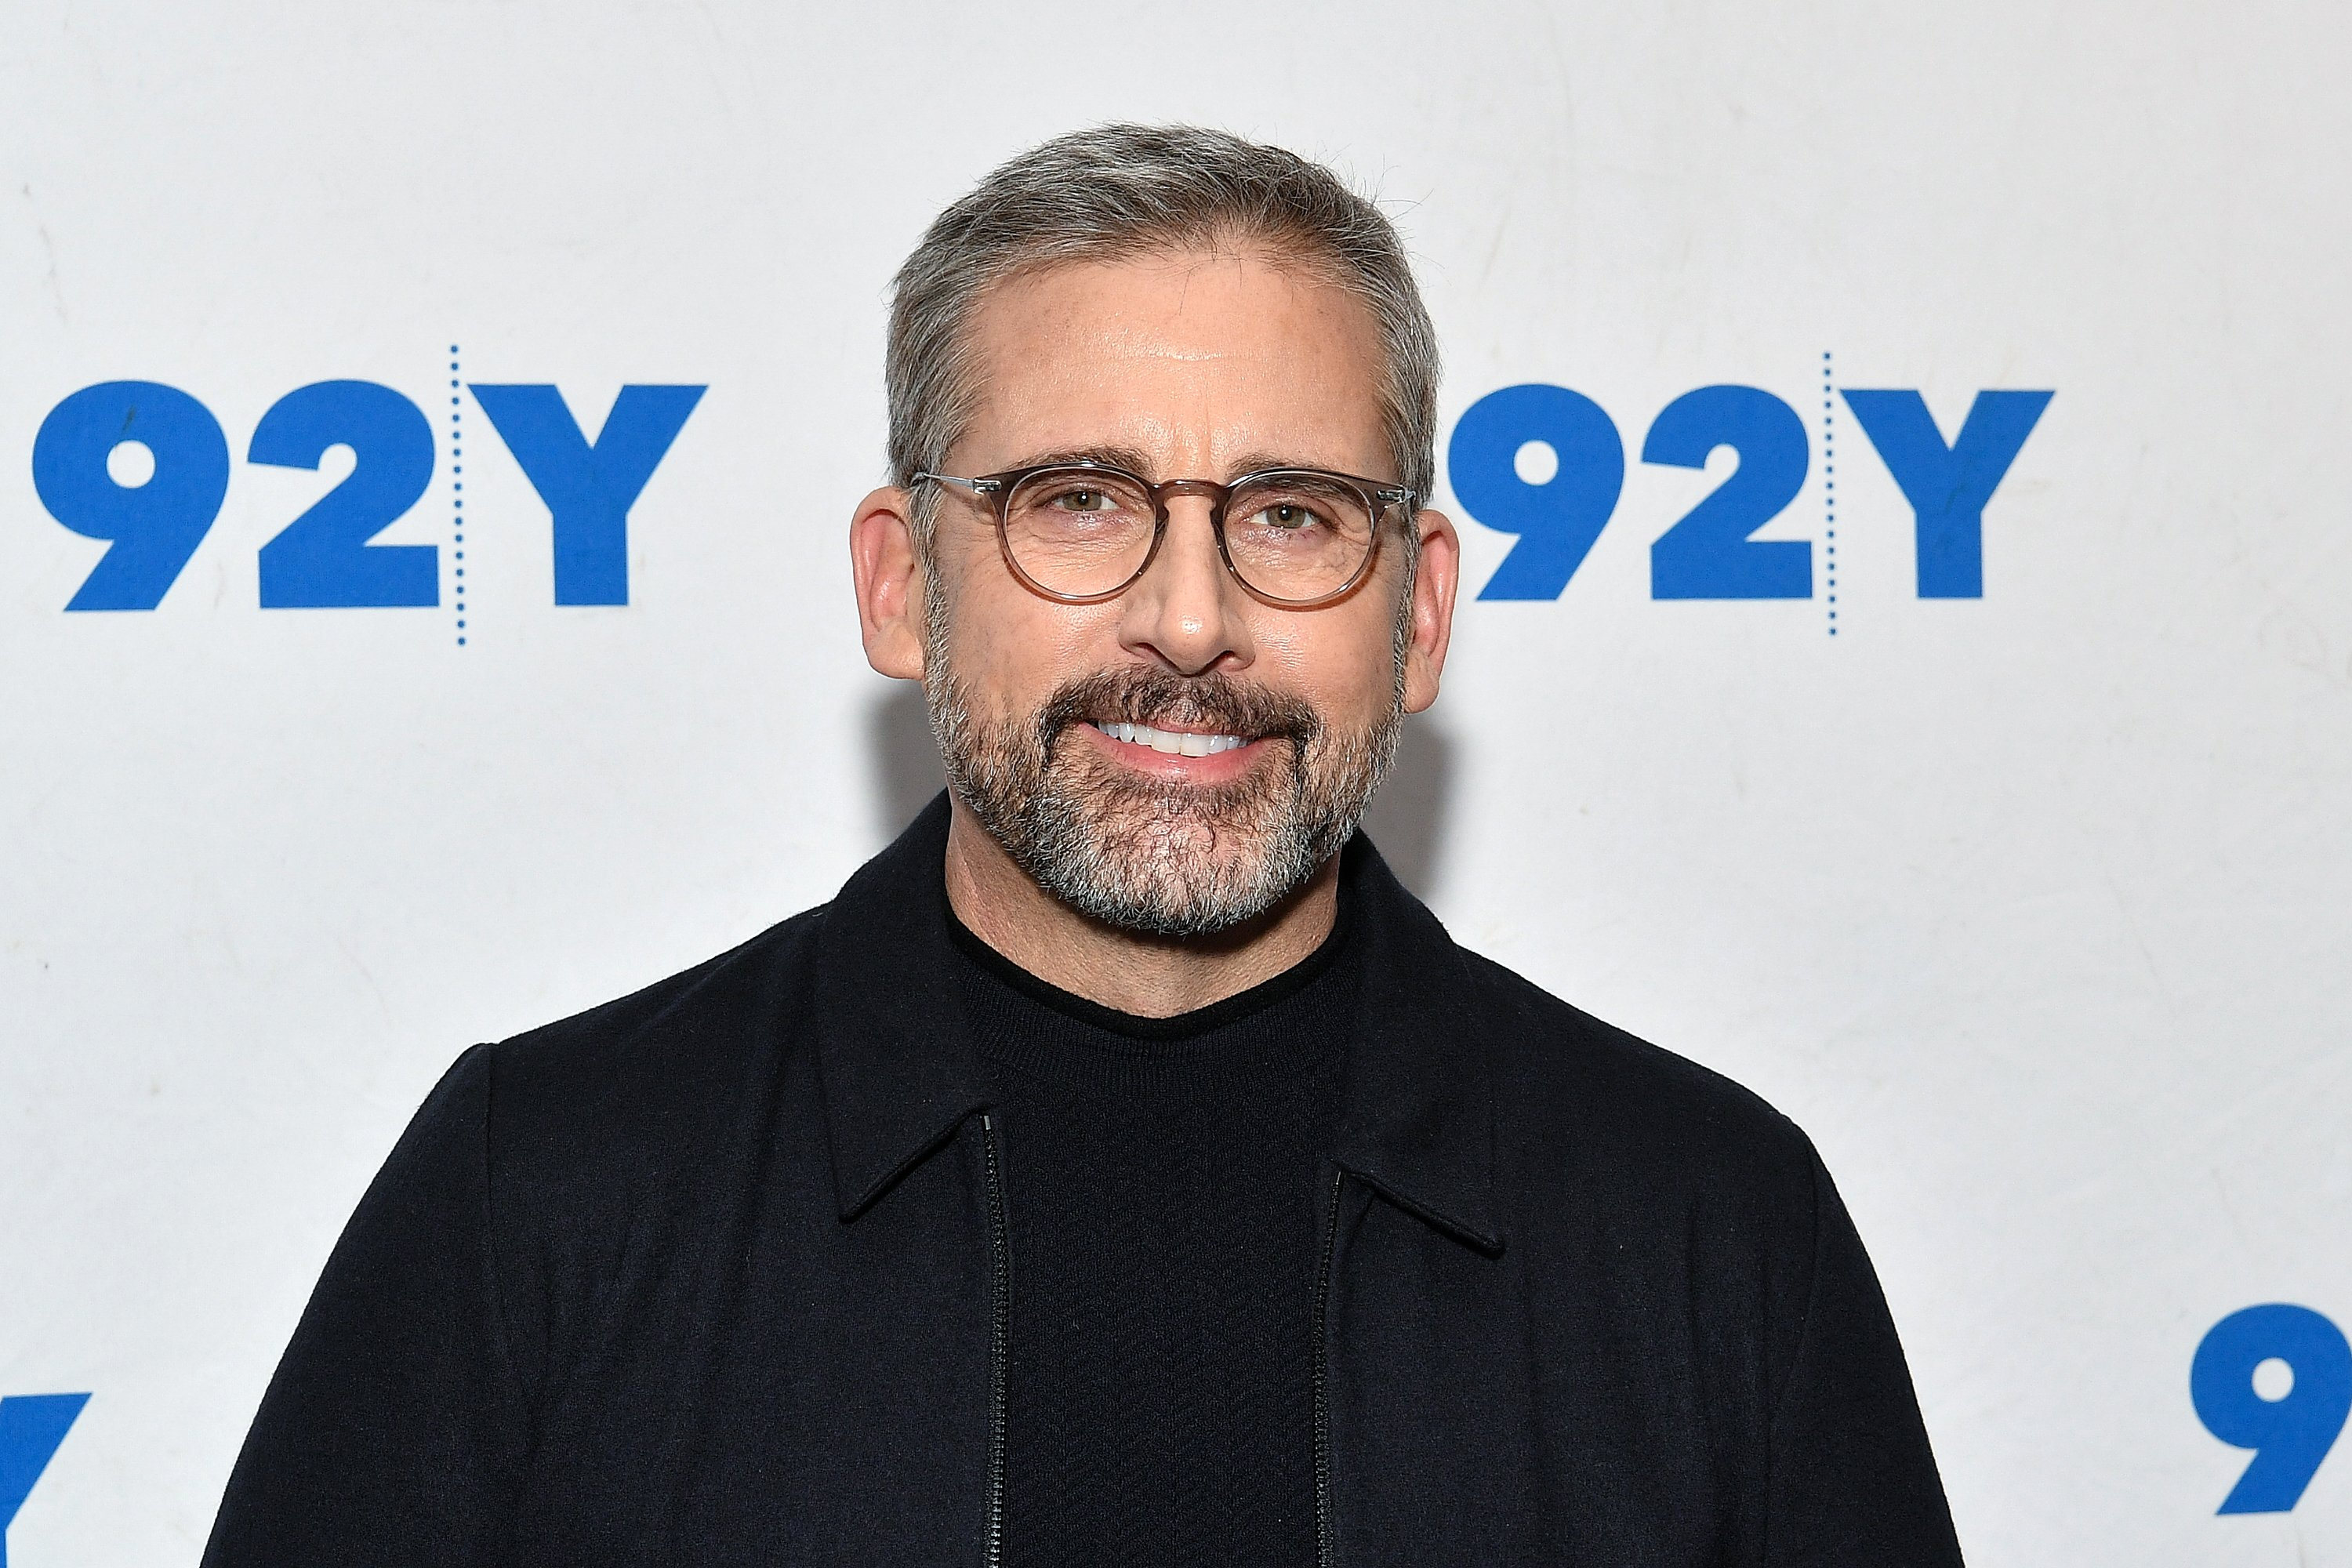 """Steve Carell attends the """"Welcome to Marwen"""" Screening & Conversation with Steve Carell at 92nd Street Y on December 20, 2018 in New York City 